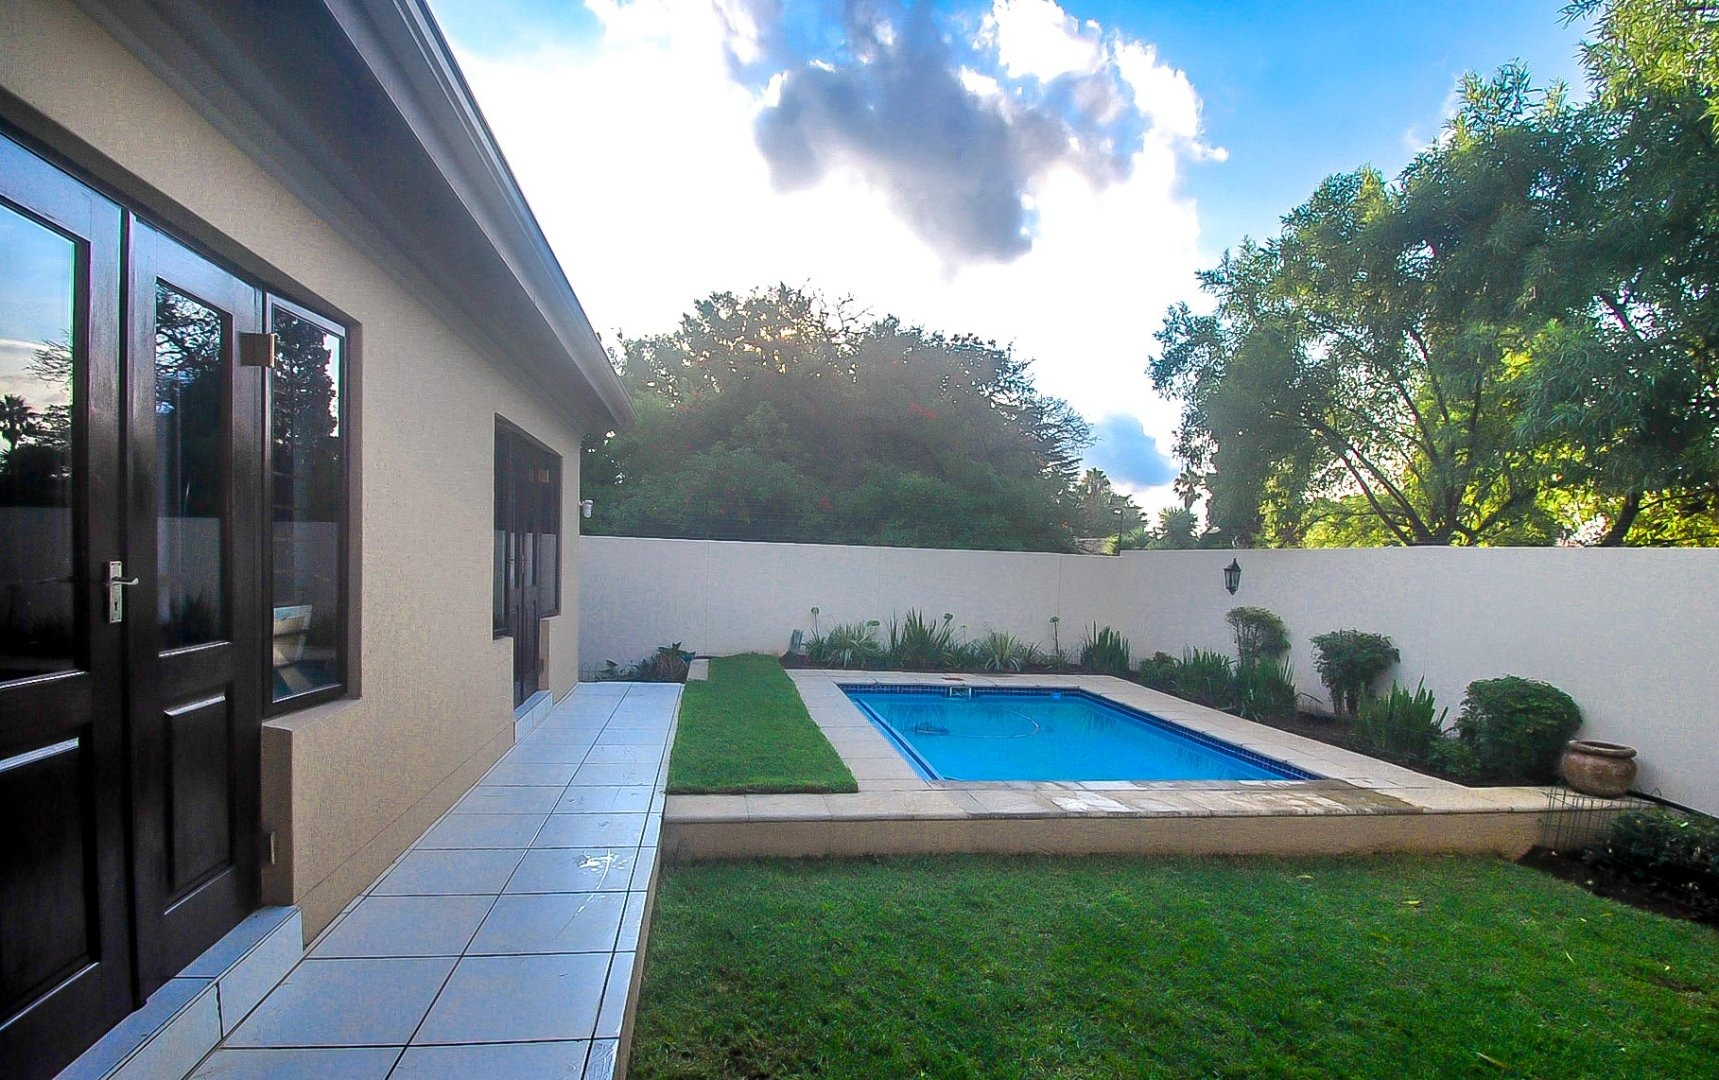 3 Bedroom House For Sale in Northcliff